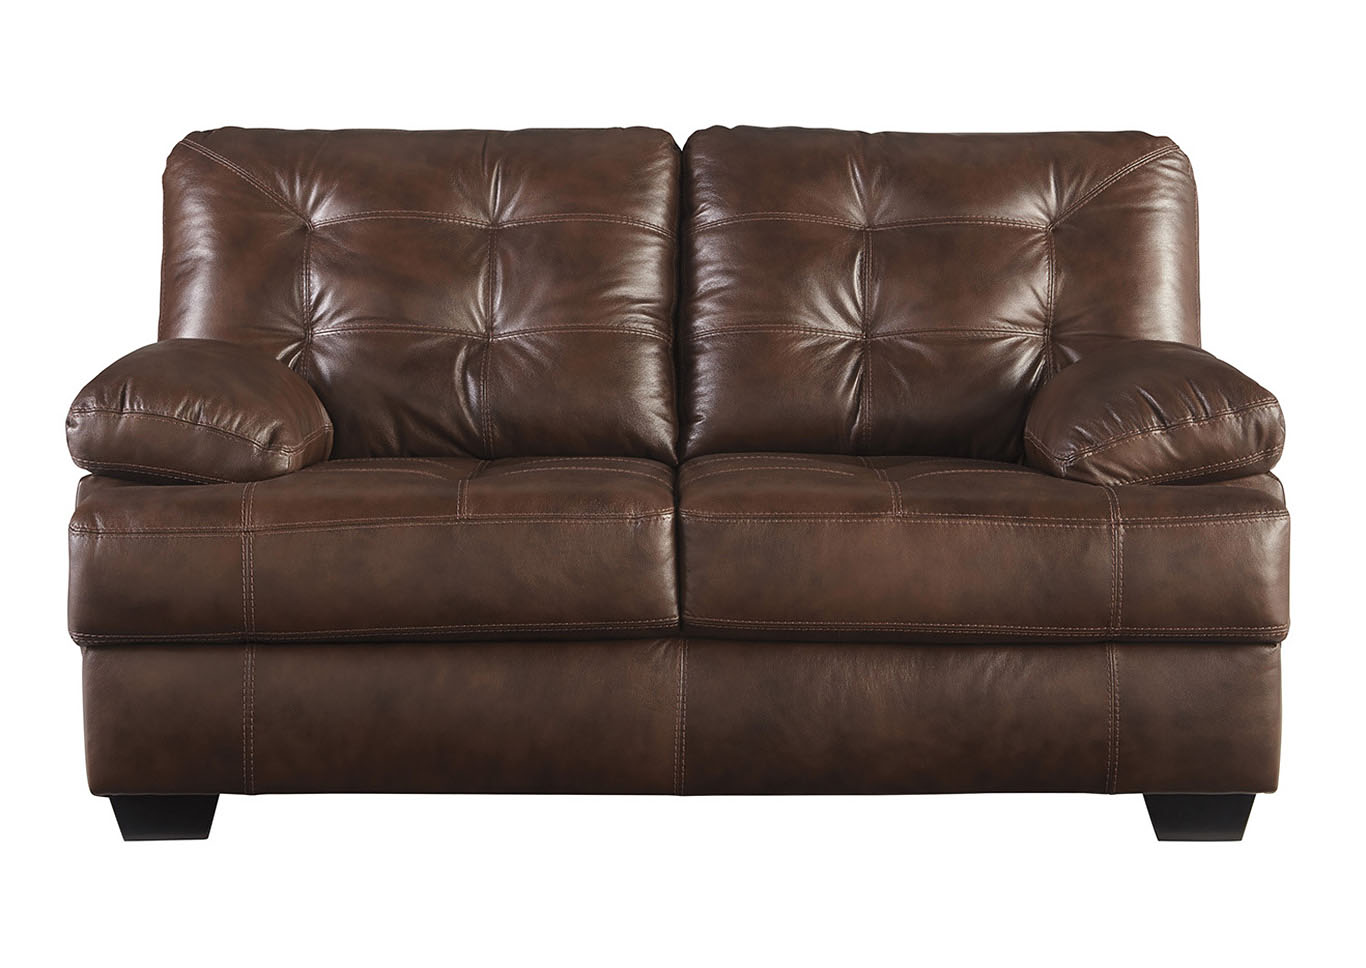 Mindaro Canyon Loveseat,Signature Design By Ashley